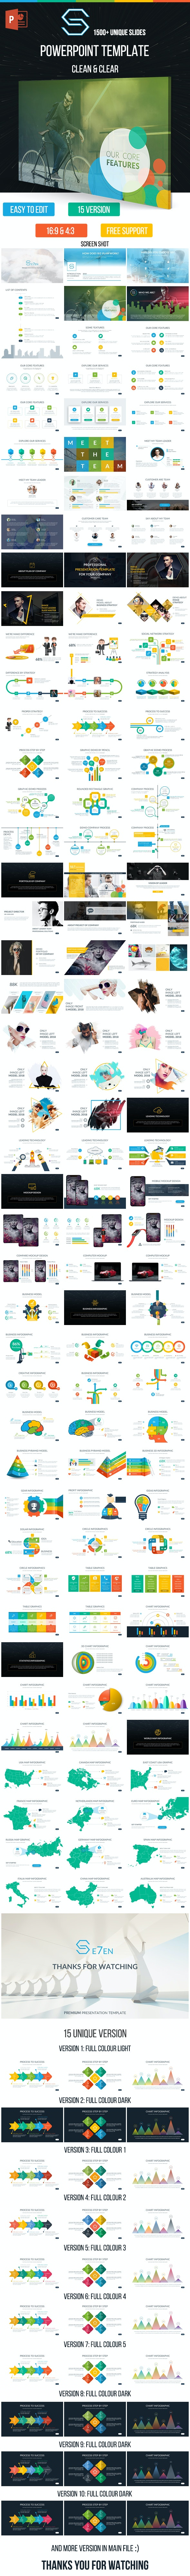 S Powerpoint Presentation Template - Business PowerPoint Templates